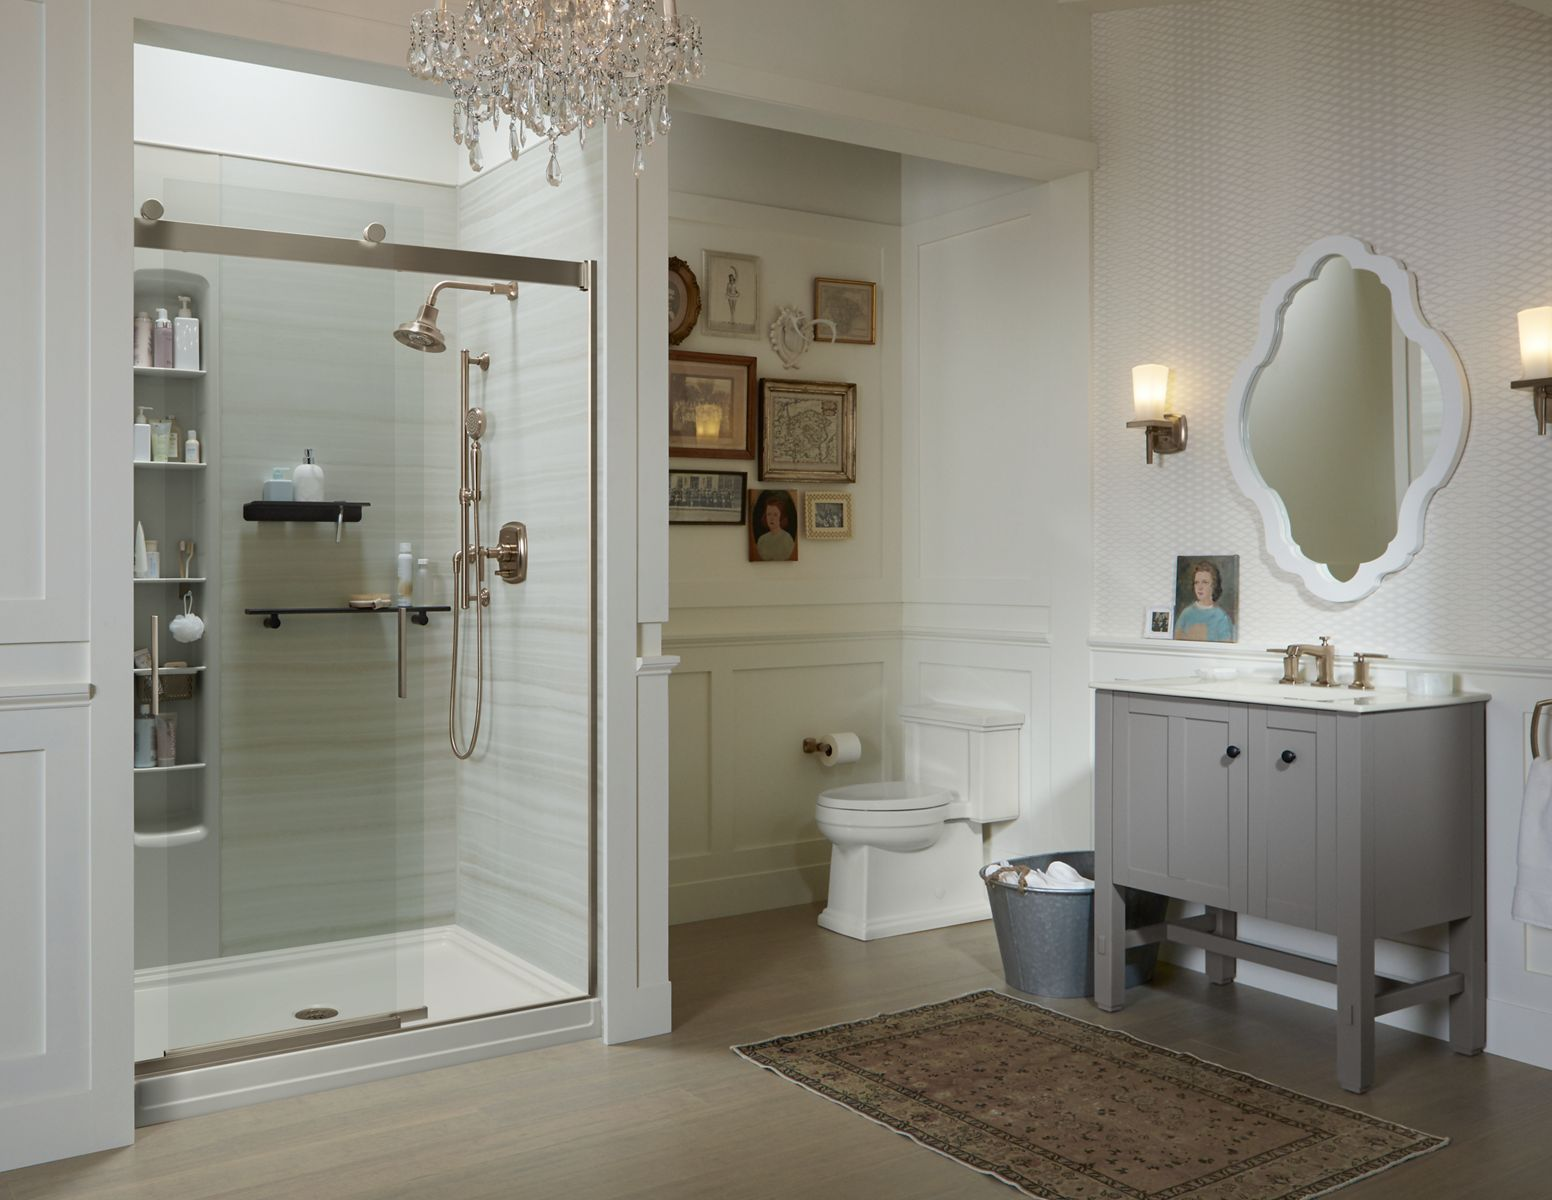 Surprising Kohler Toilets Showers Sinks Faucets And More For Bathroom Inspirational Interior Design Netriciaus